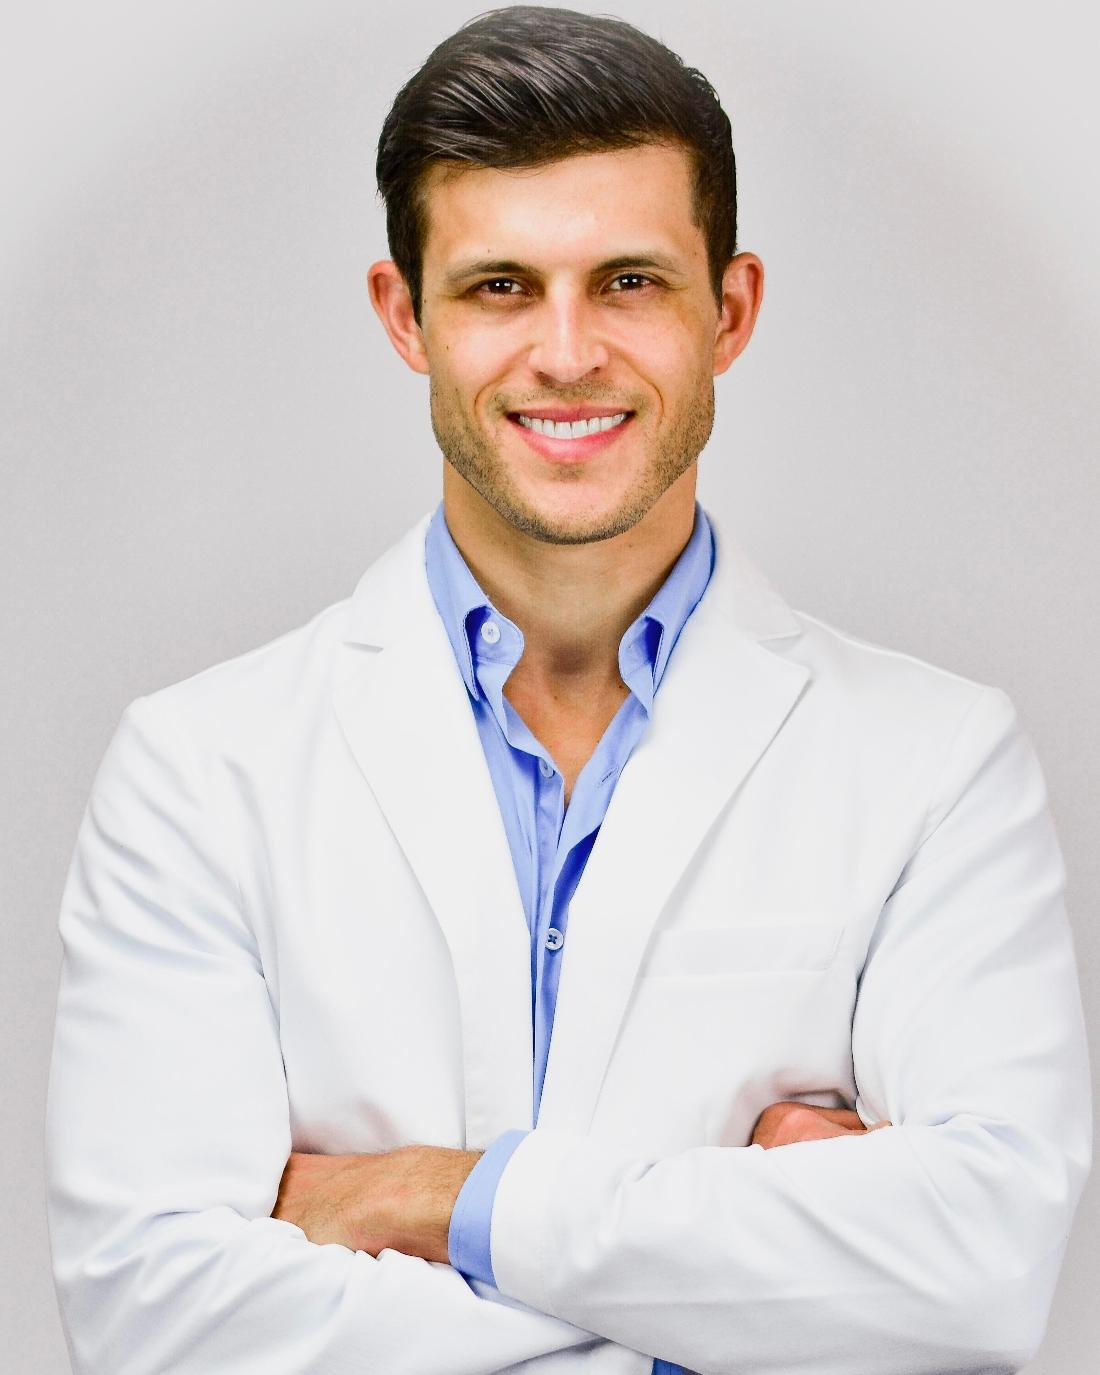 Top Dentist in Santa Monica | Dr. Chris Strandburg